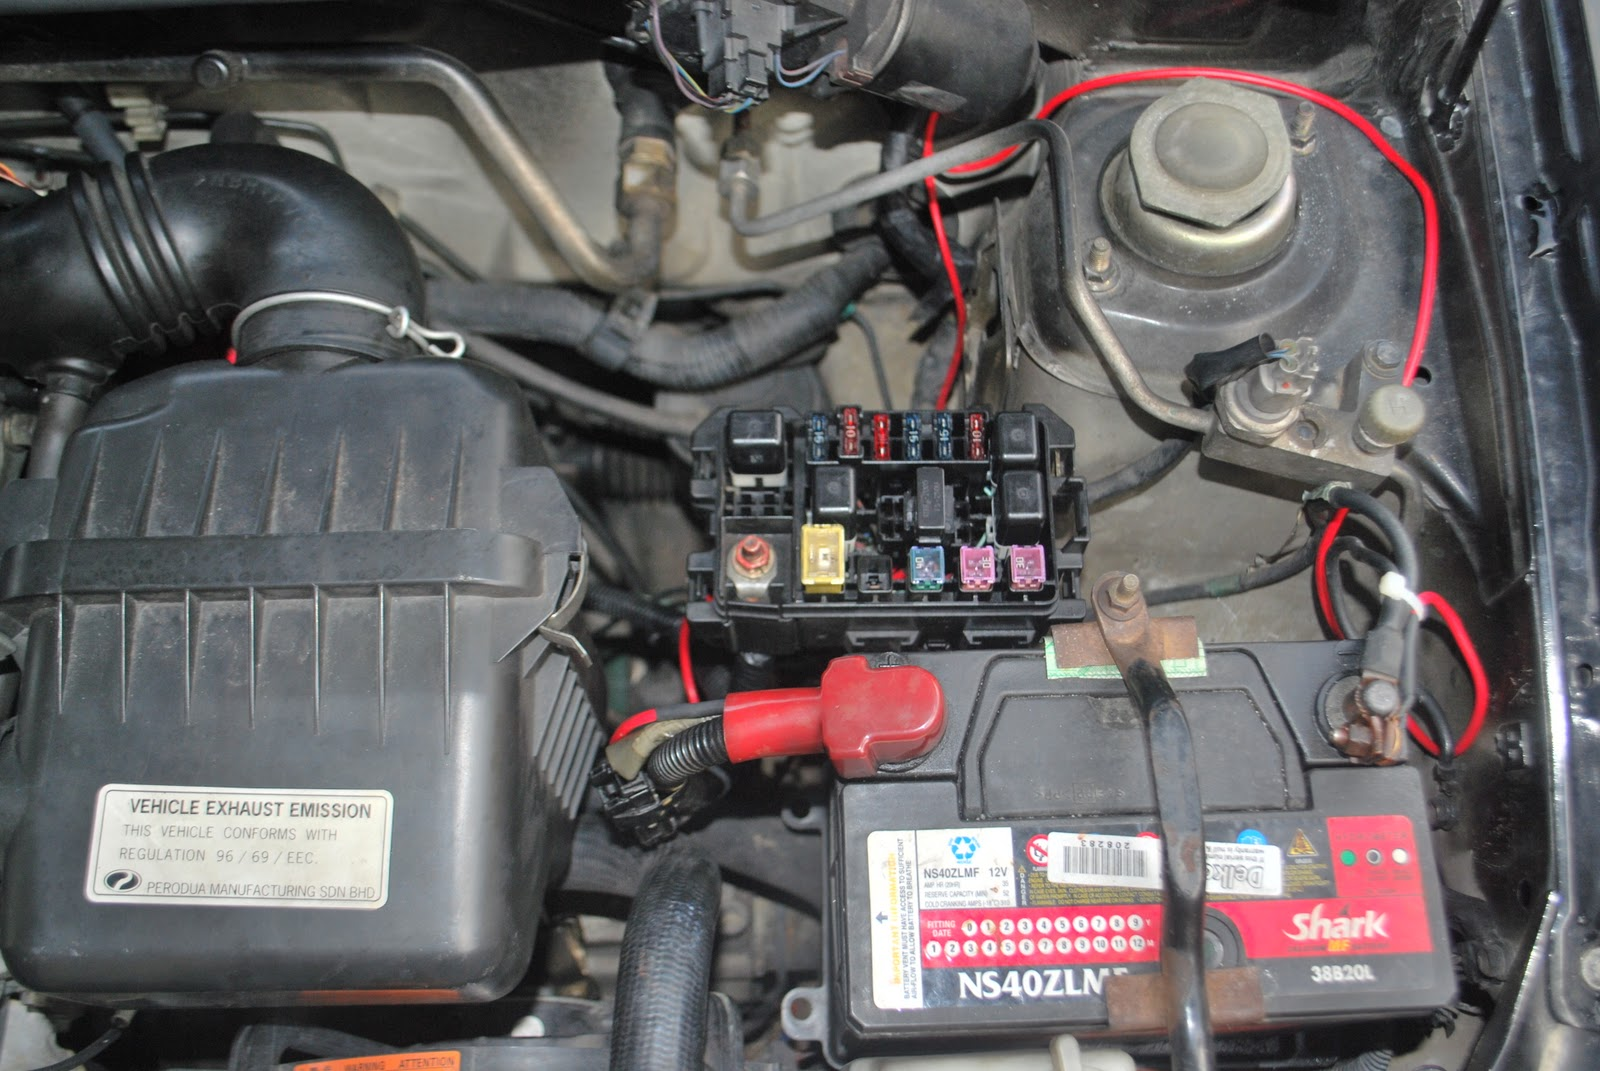 Daihatsu Cuore Fuse Box Location Electrical Work Wiring Diagram Kancil 850 19 Images Diagrams 138dhw Co Sirion Gtvi